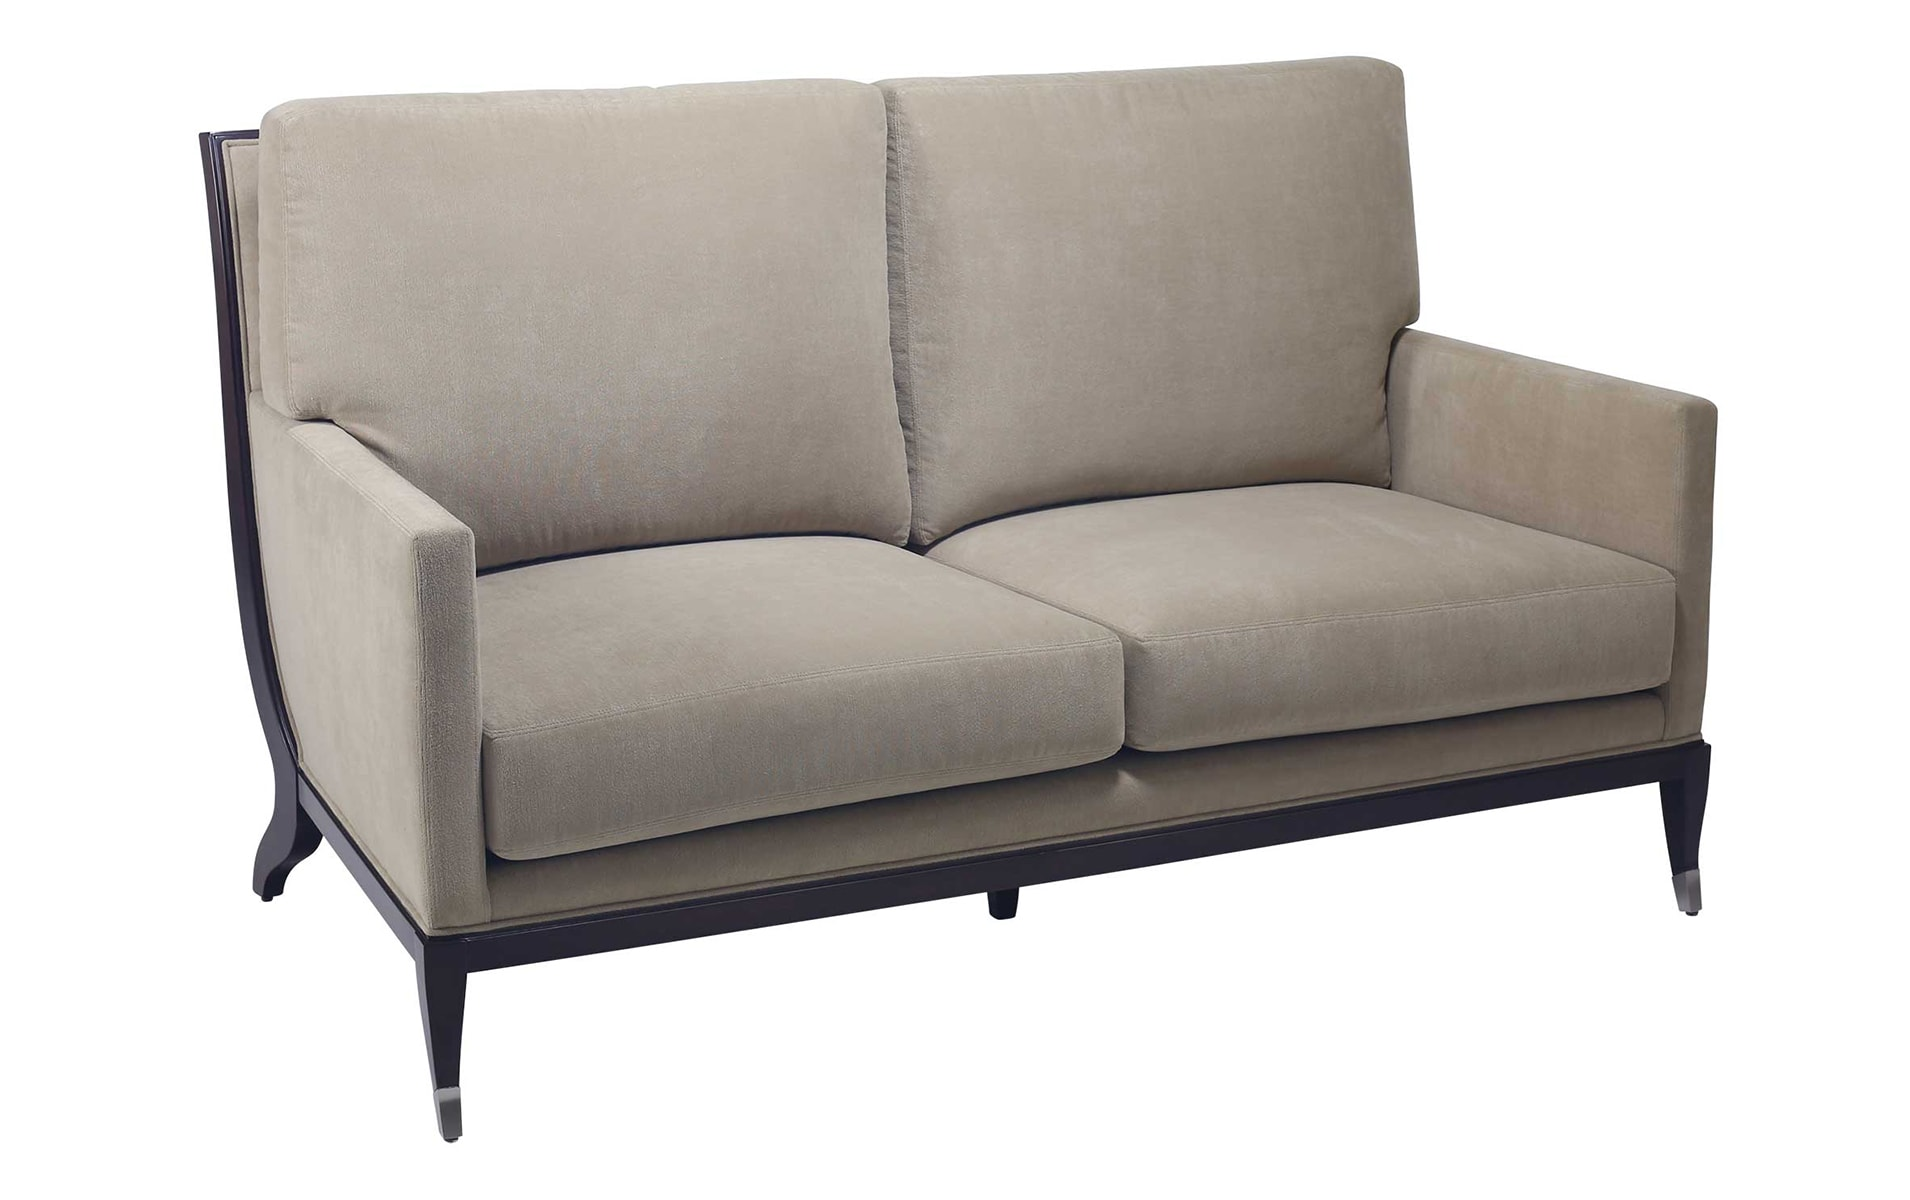 Canape Sofa The Canape Apollon Sofa Tatiana Tafur